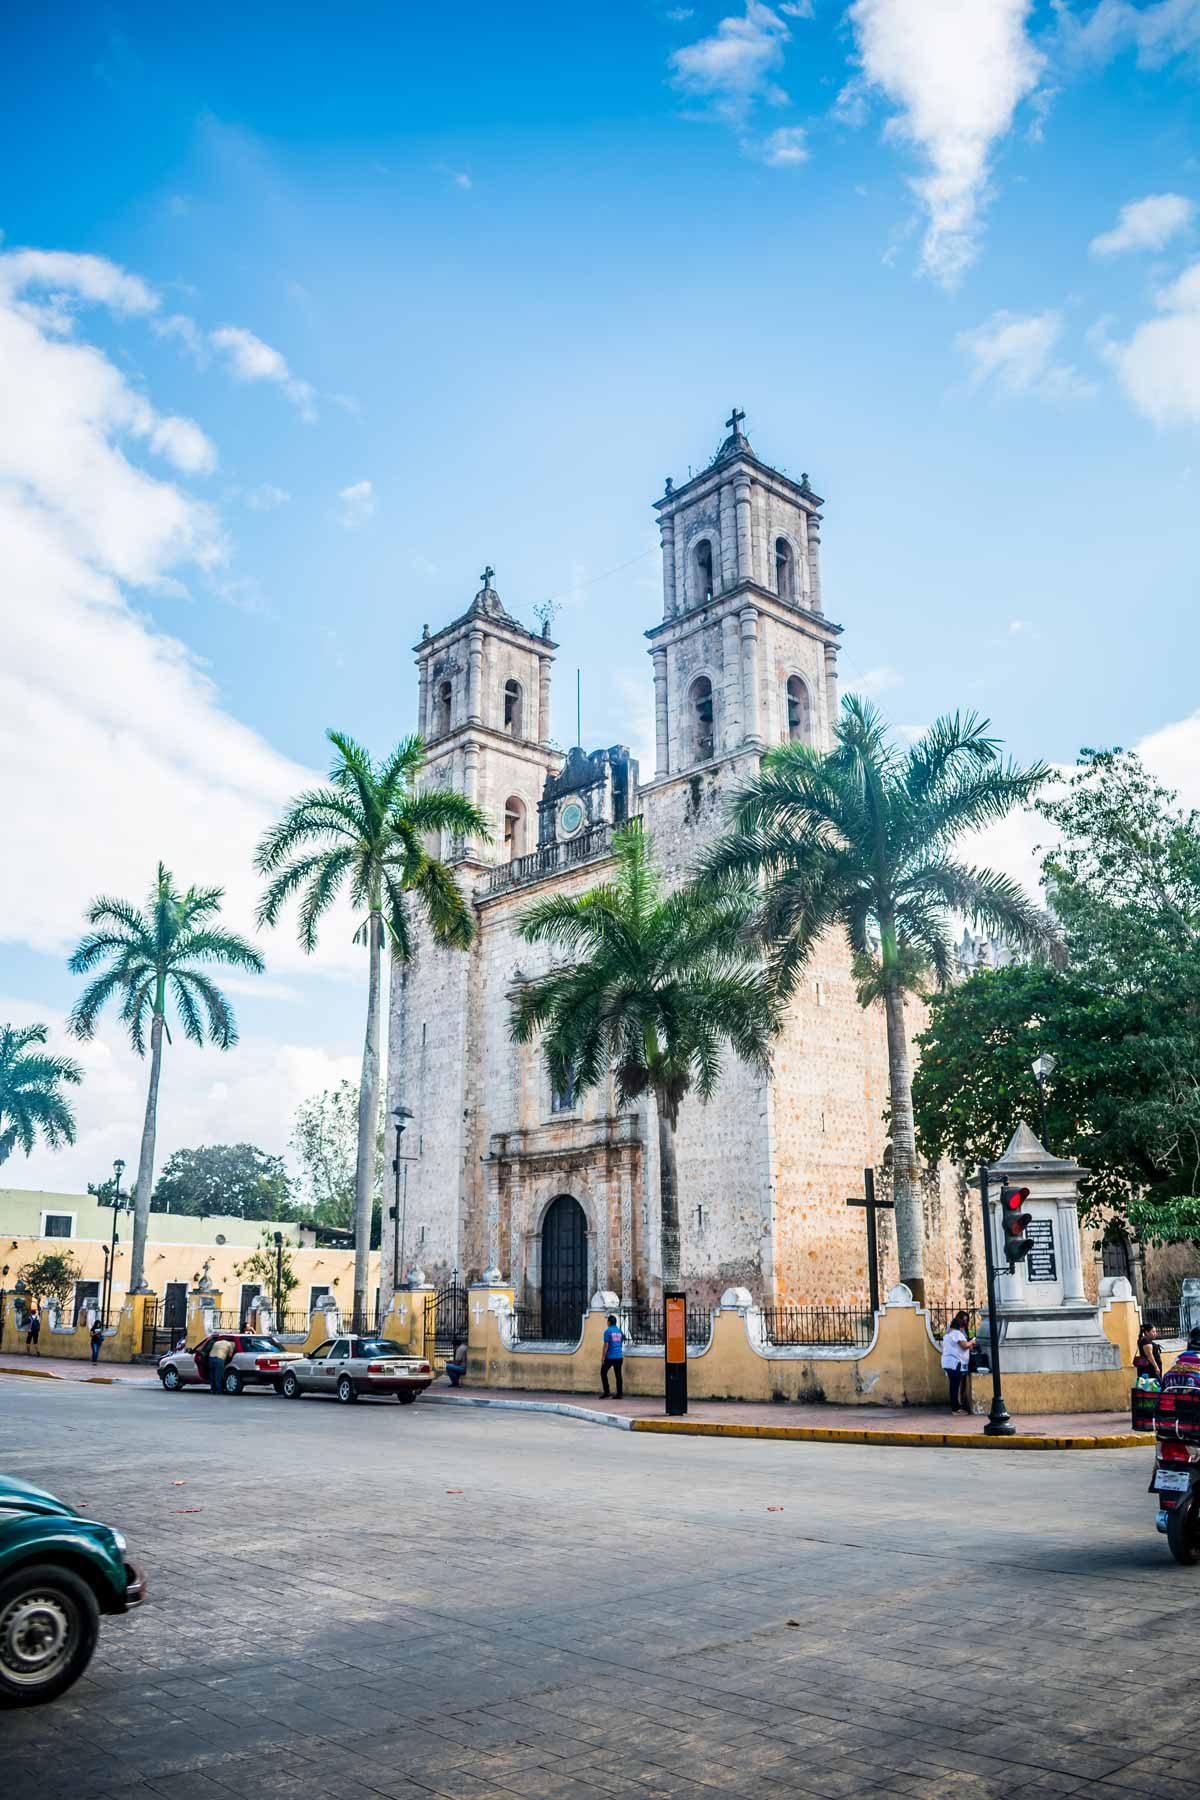 20 EPIC Valladolid Instagram spots for travelling Mexico. A view of Cathedral of San Gervasio in the main square